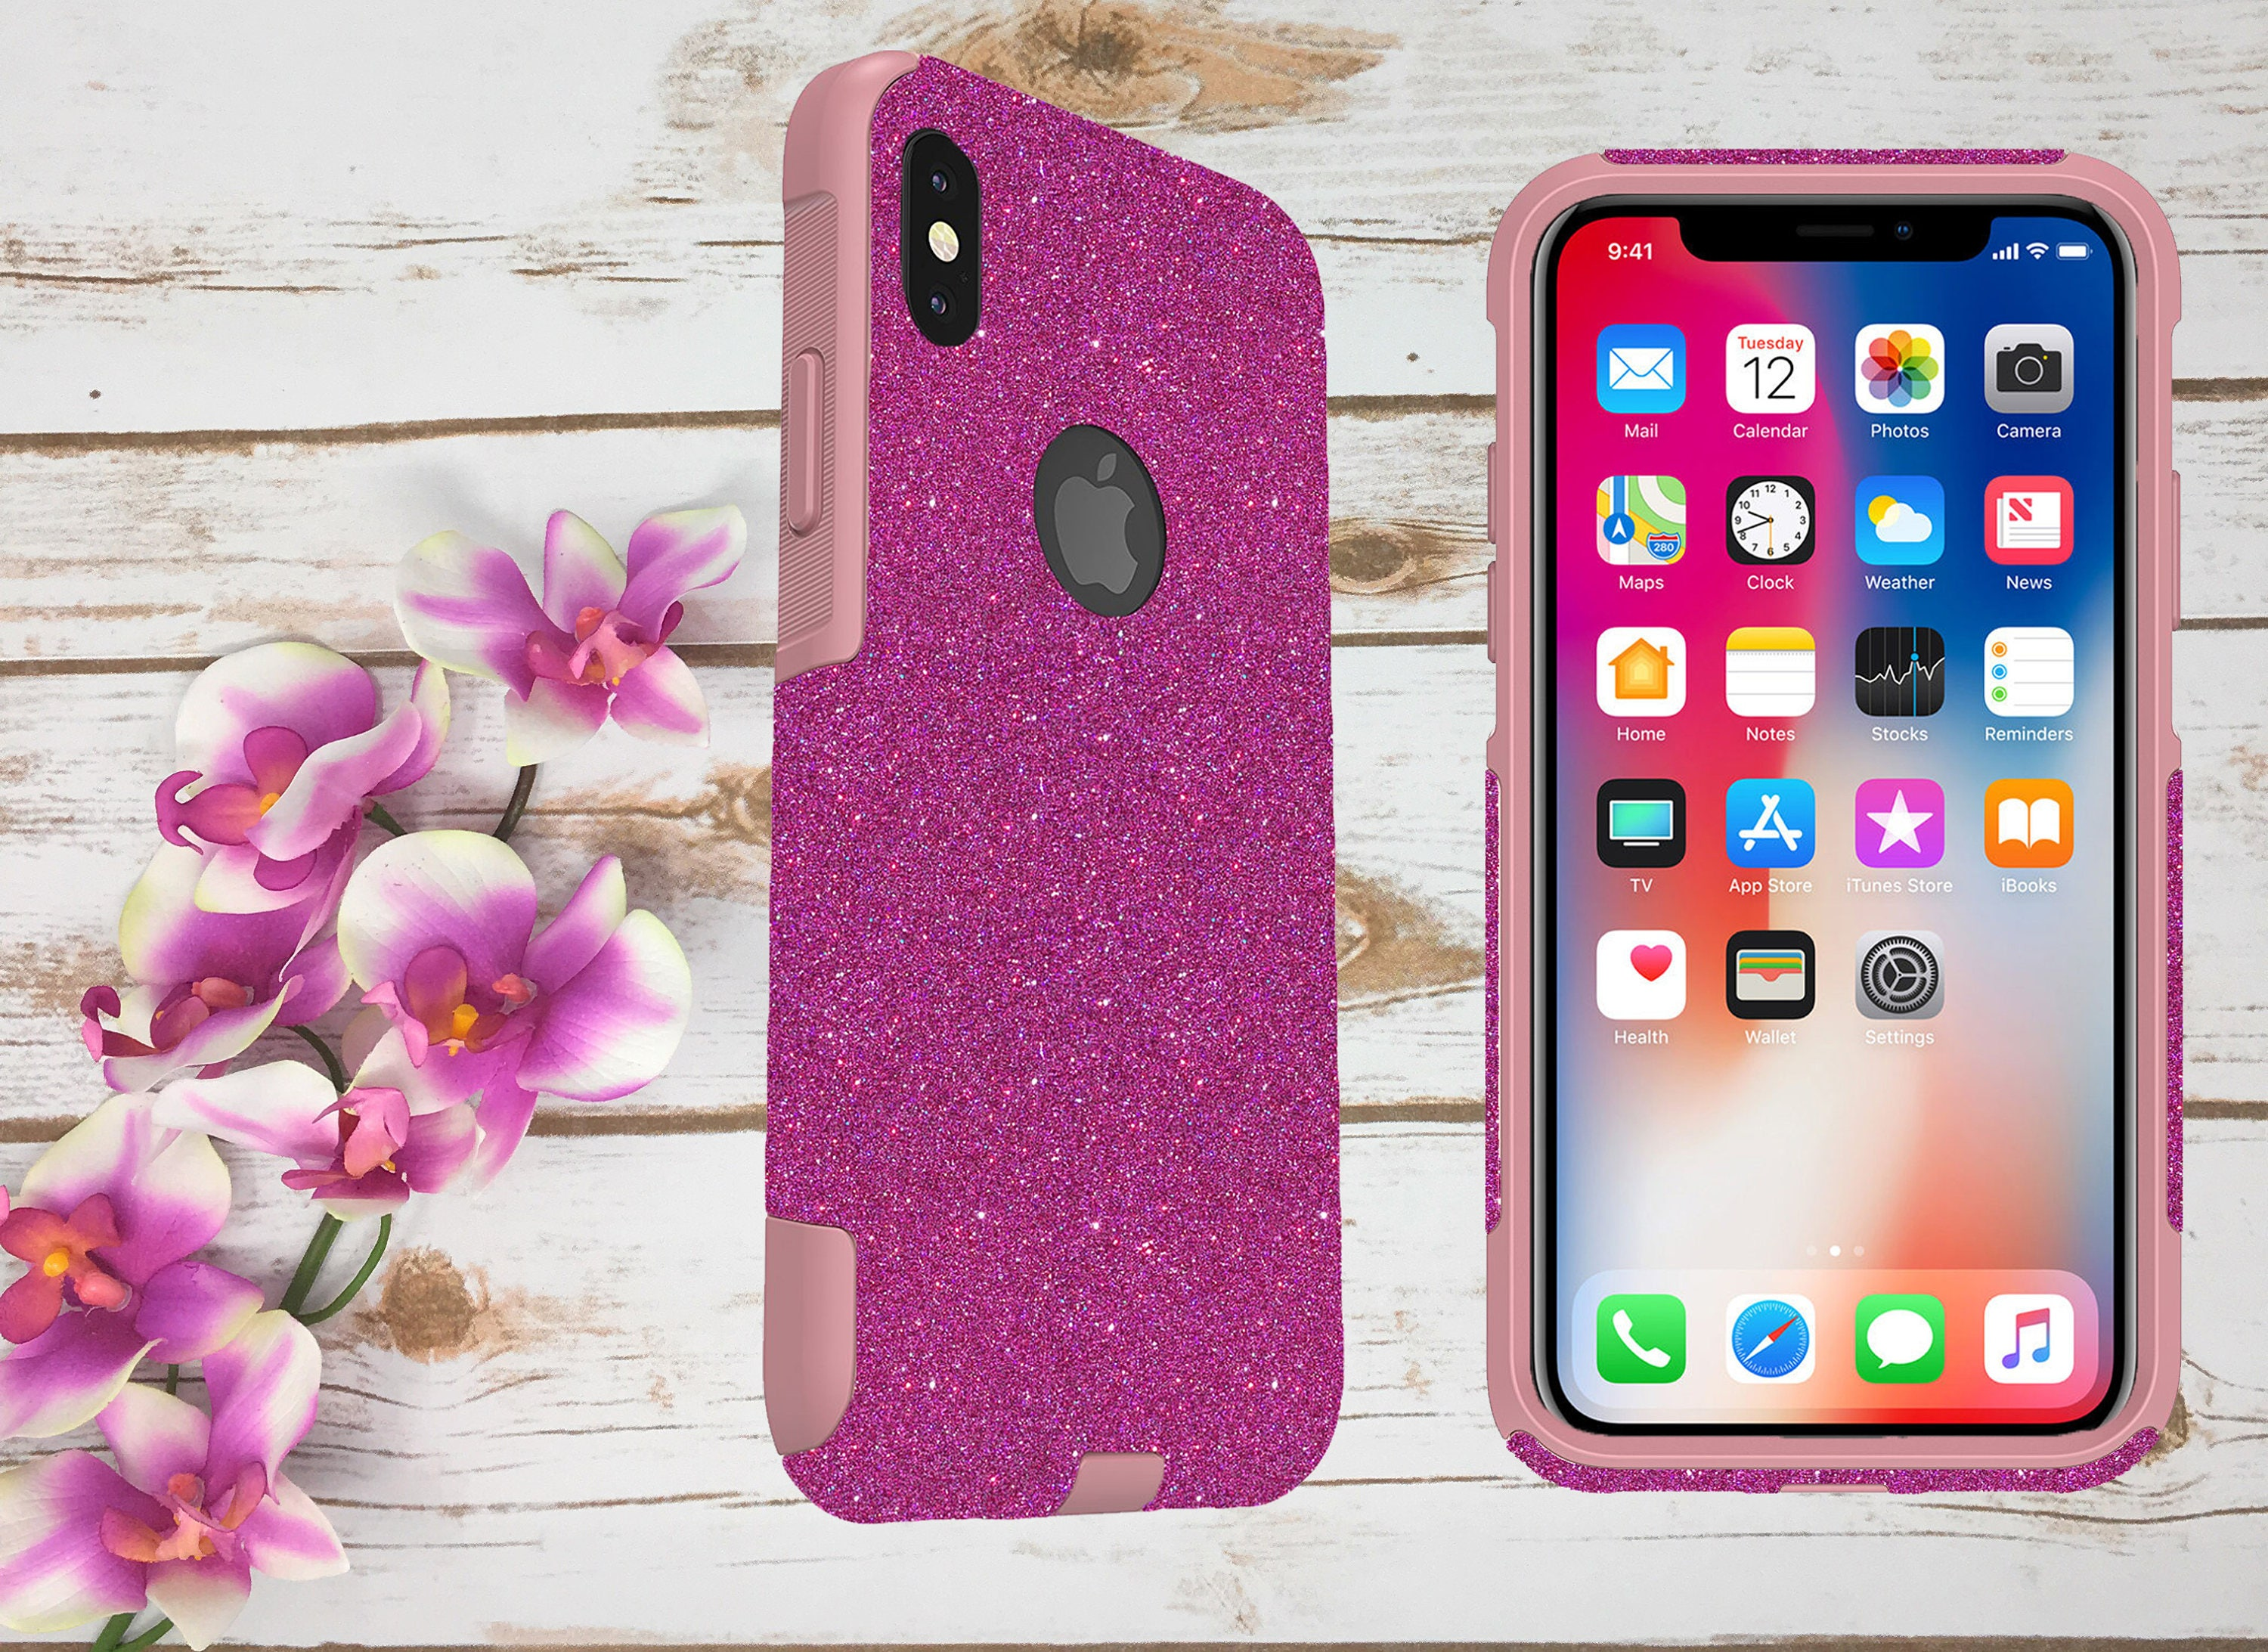 iPhone X Case Otterbox, Case for iPhone X, iPhone 10 Otterbox Commuter  Case, Glittery Case for Girls, Sparkly Otterbox iPhone X Case Cover